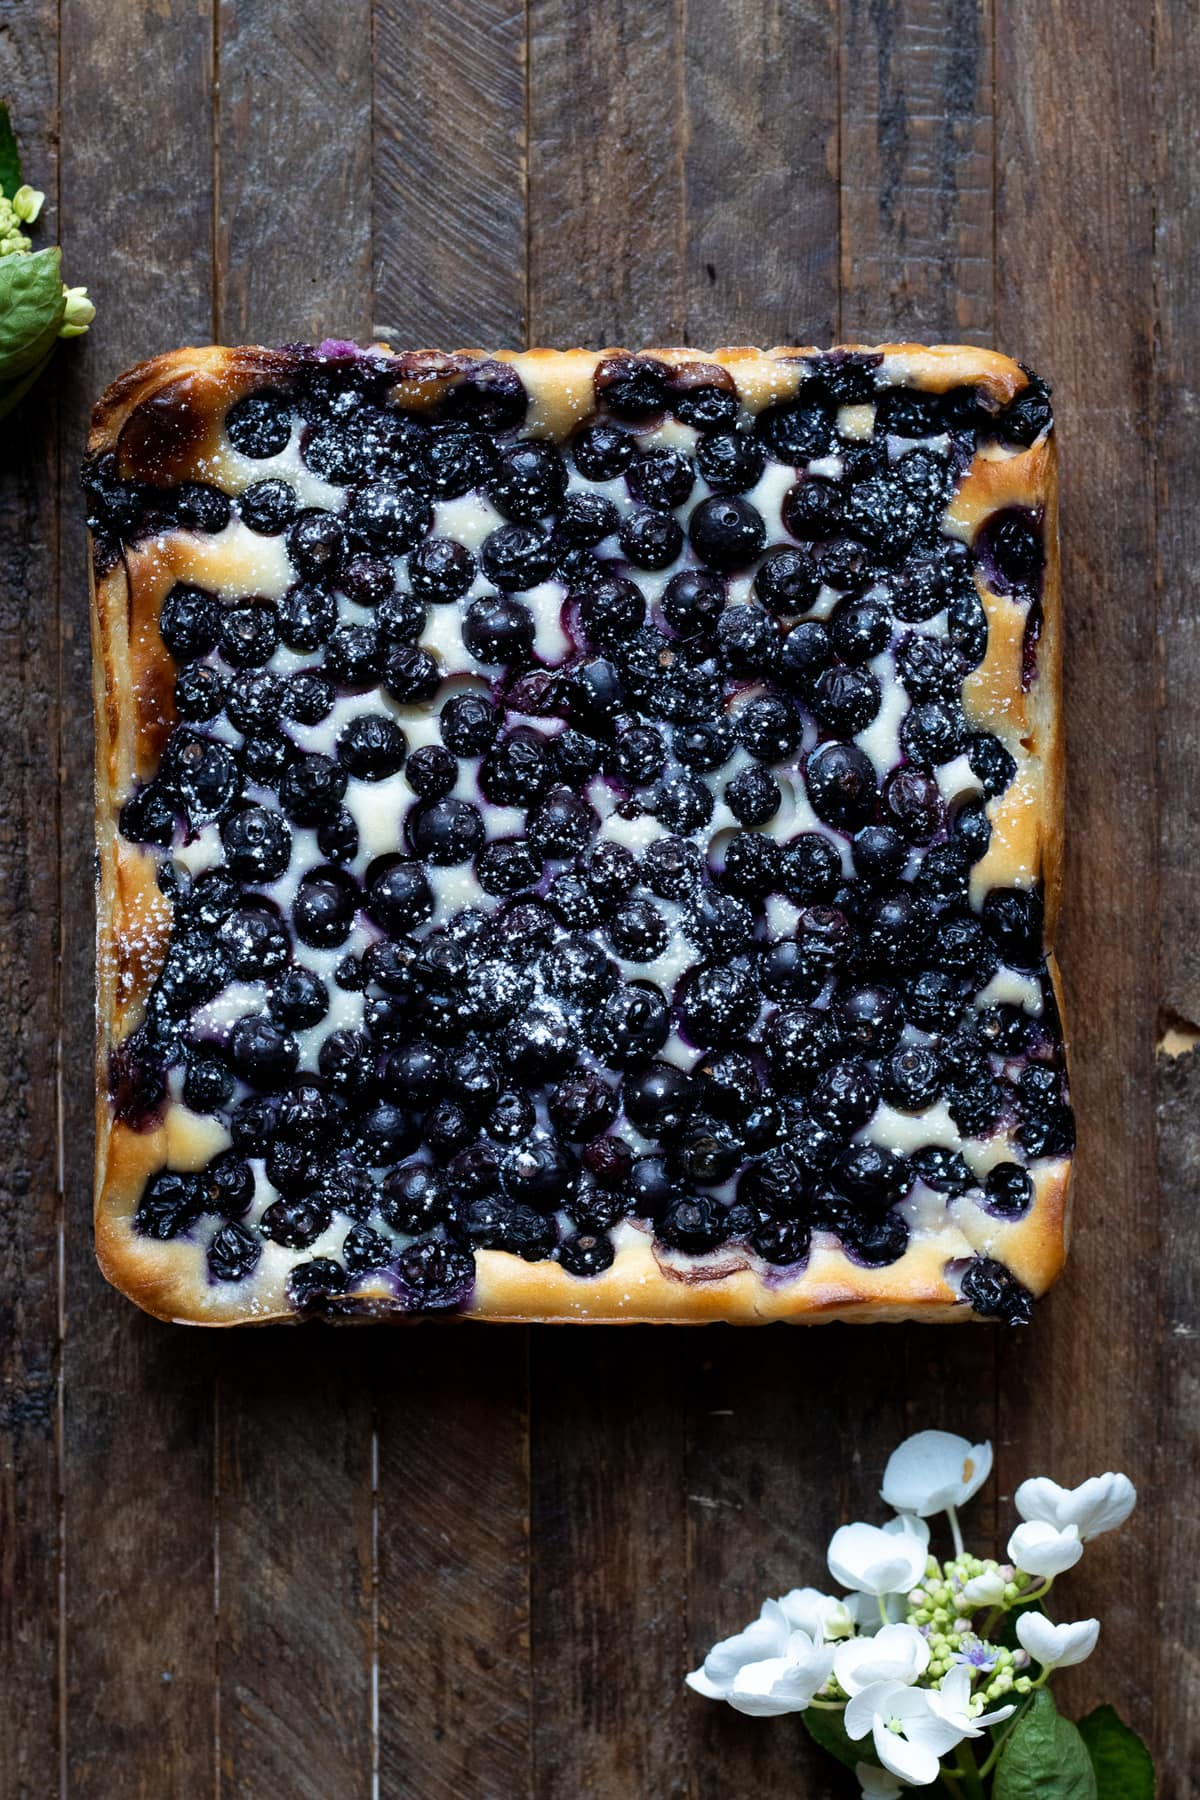 baked blueberry cheesecake bars before slicing dusted with powdered sugar.